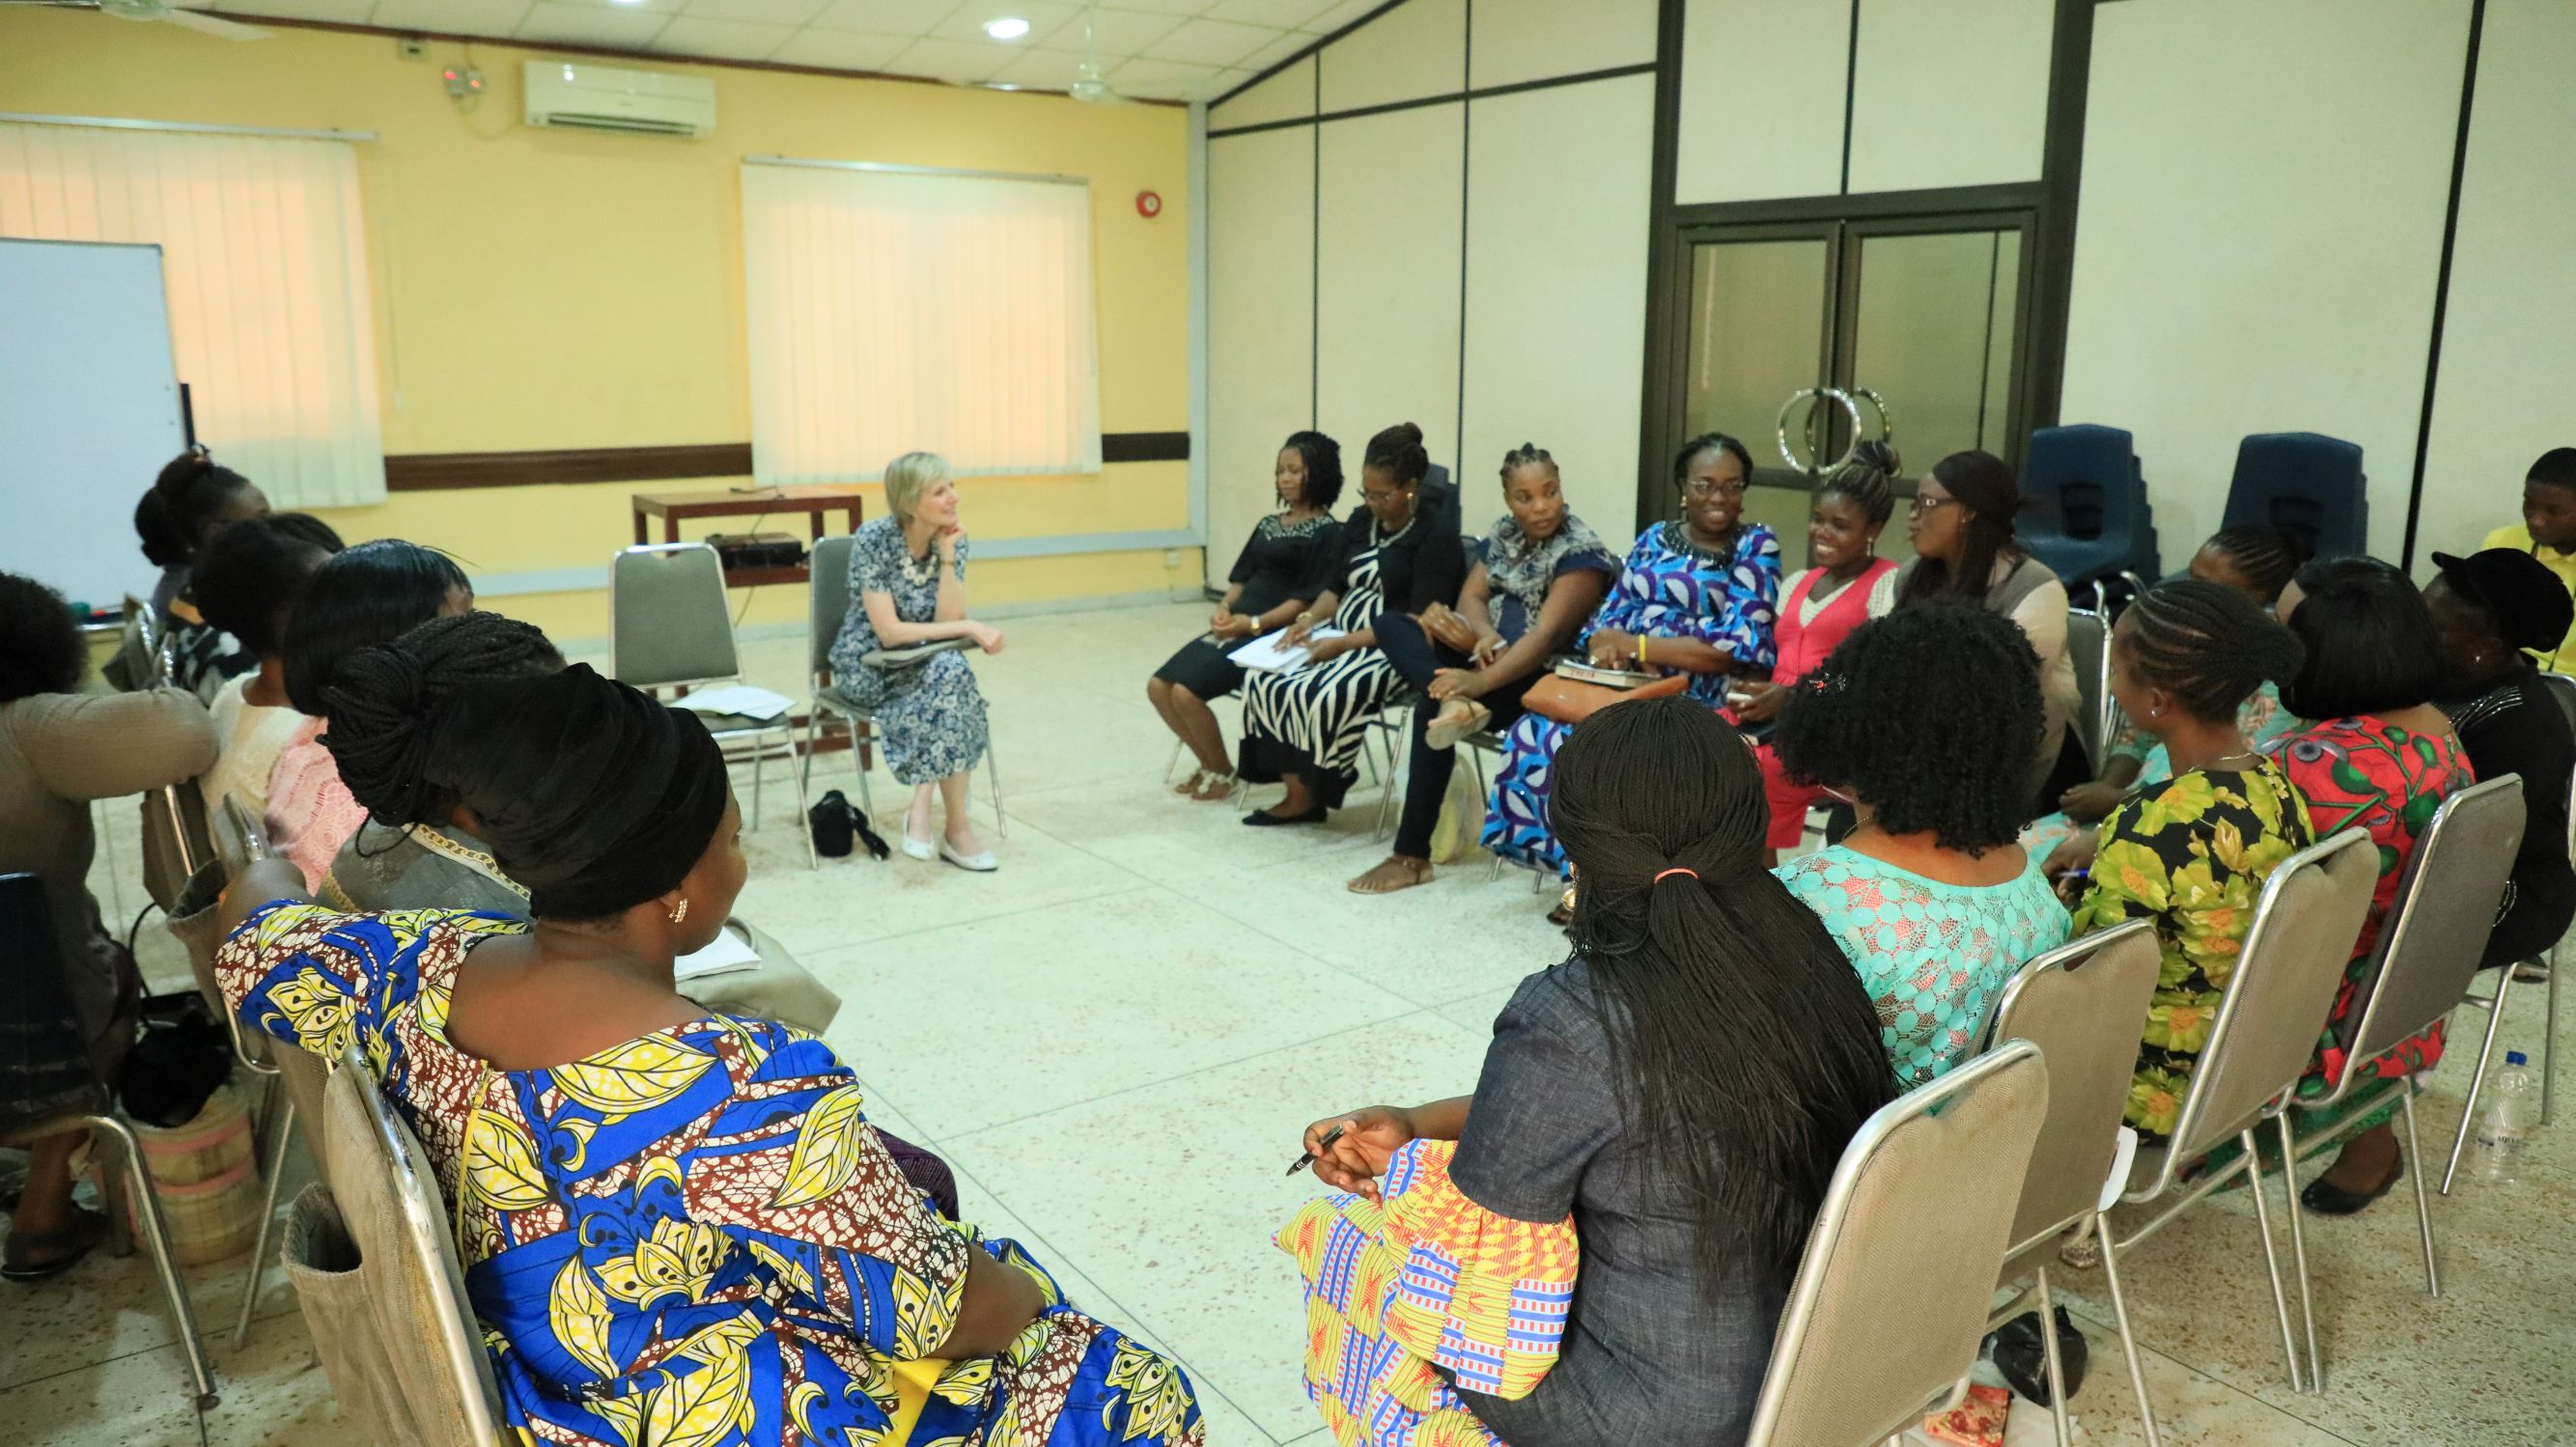 Relief Society members in Lagos, Nigeria, gather with Relief Society general president Sister Jean B. Bingham, Wednesday, March 6, 2019.